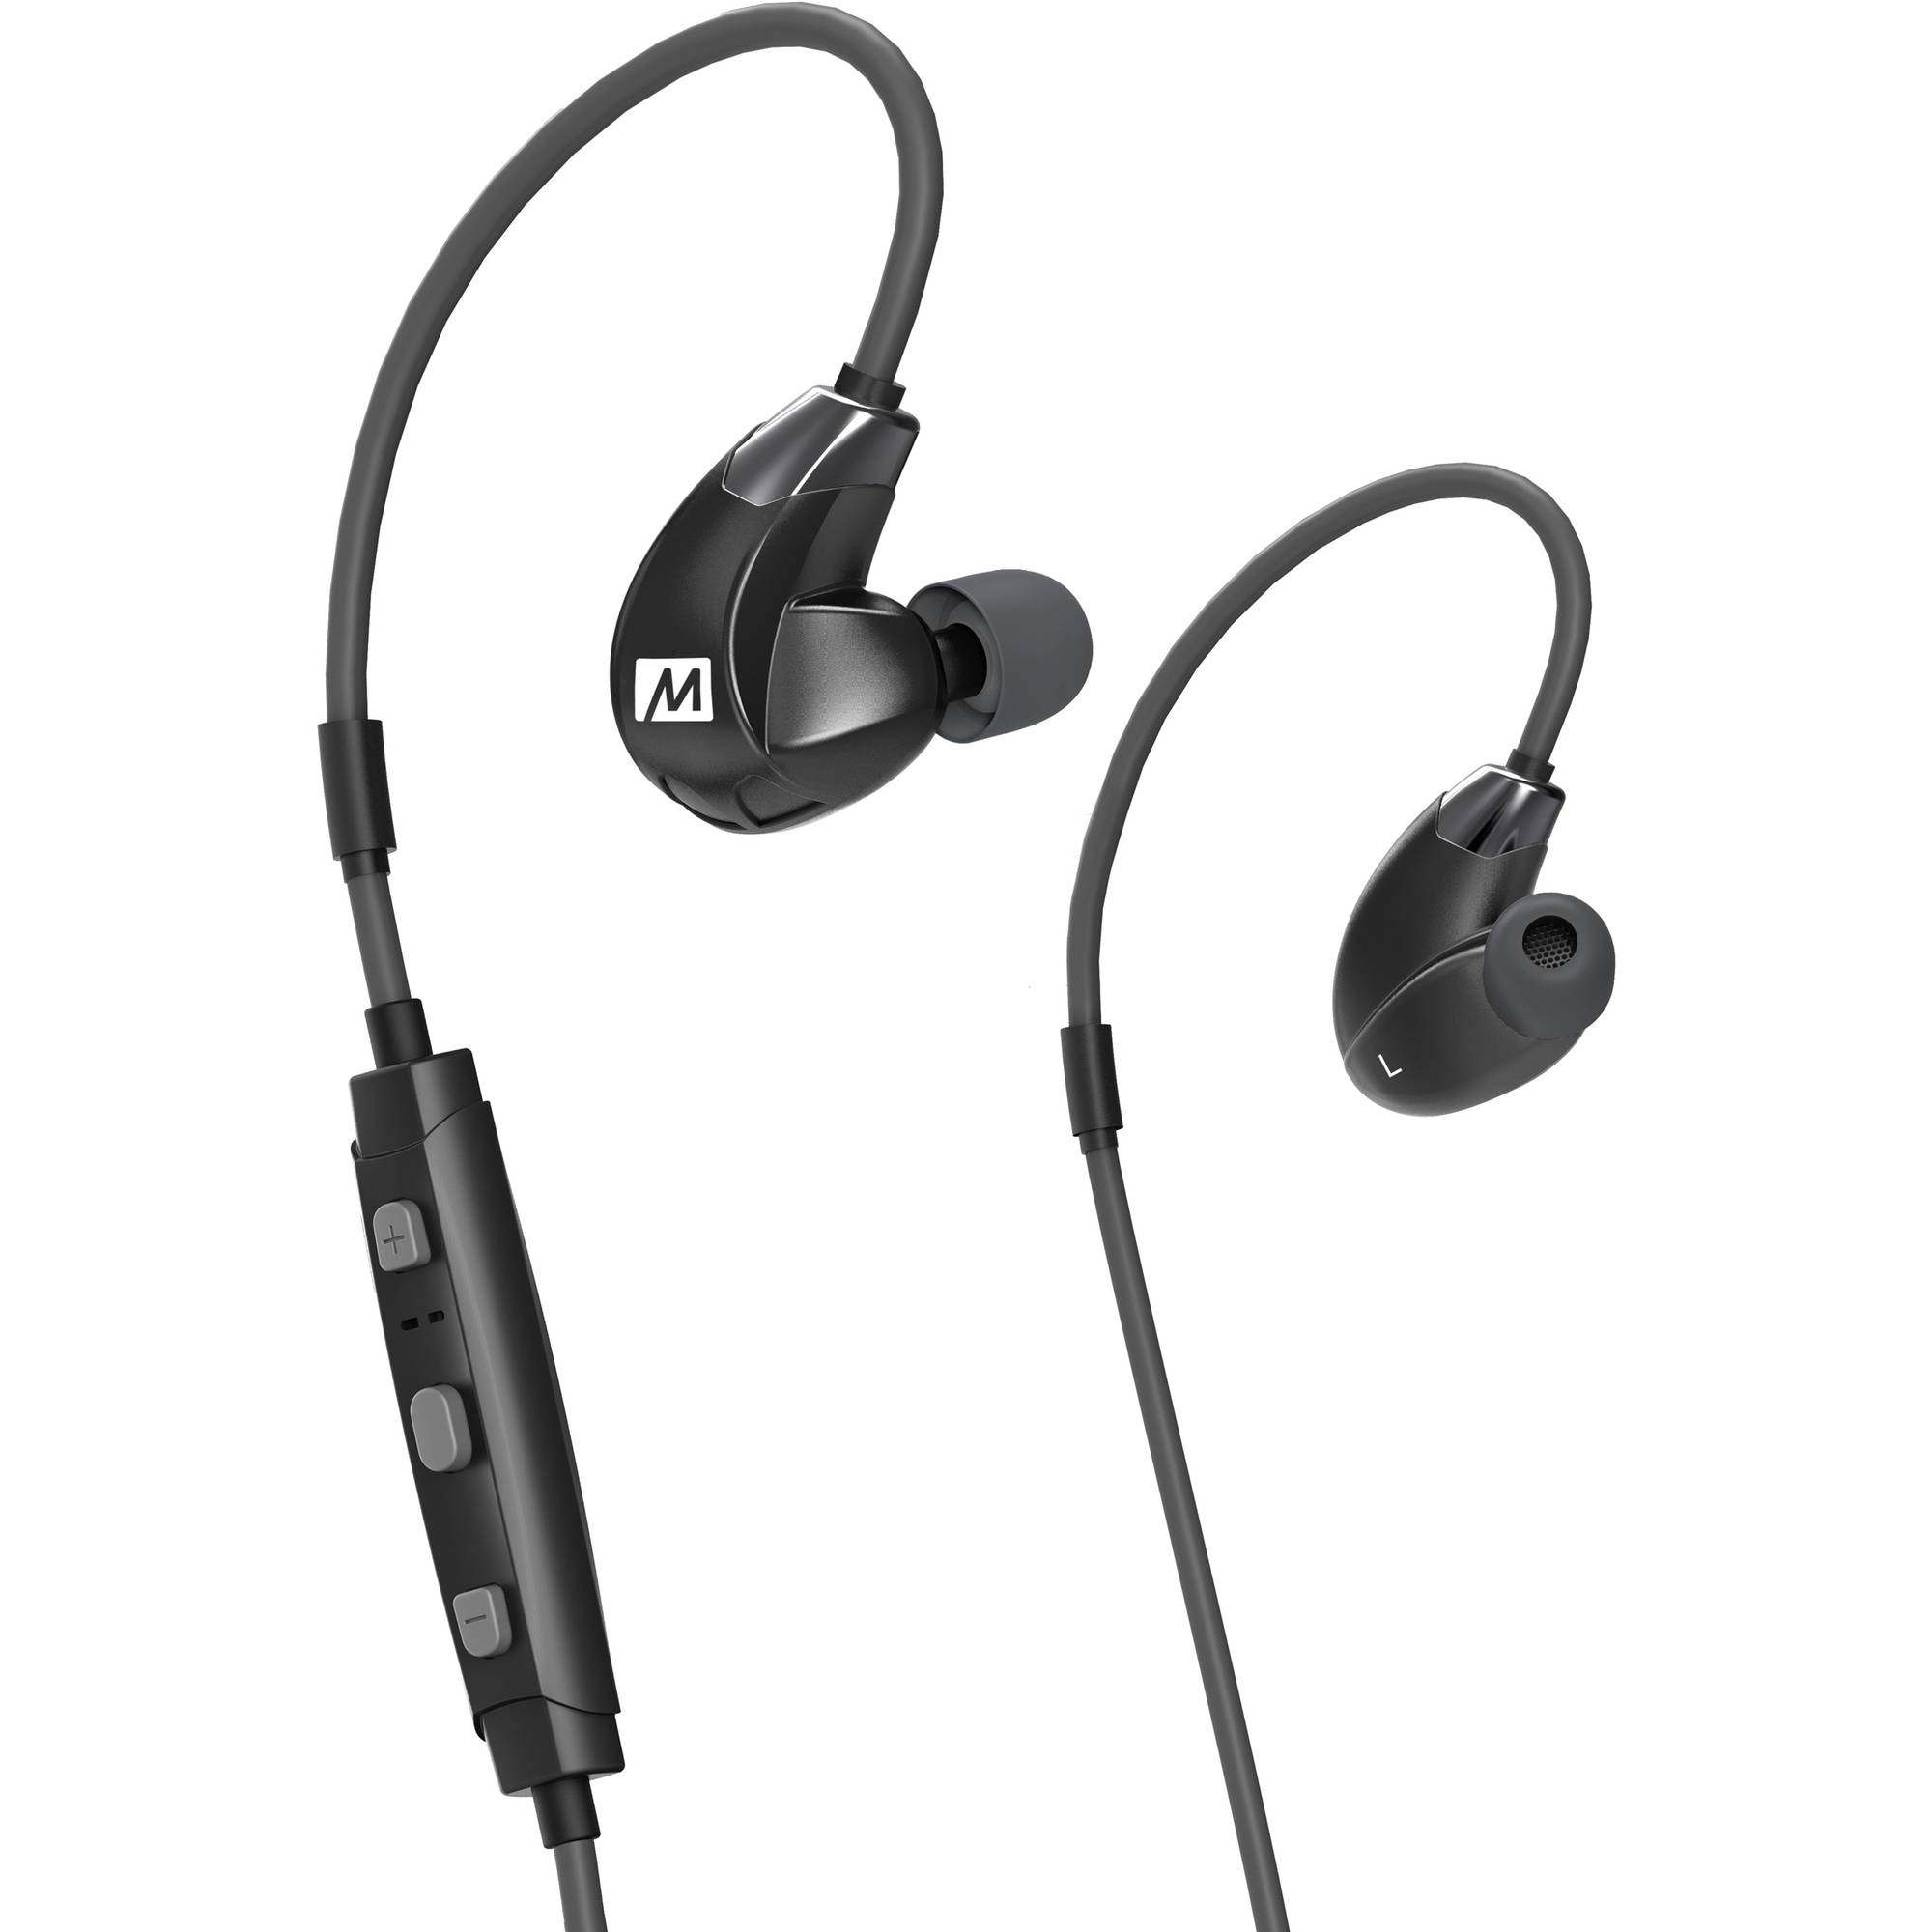 9577e3d1555 MEE audio X7 Plus Stereo Bluetooth Wireless Sports In-Ear HD Headphones  with Memory Wire and Headset - Walmart.com